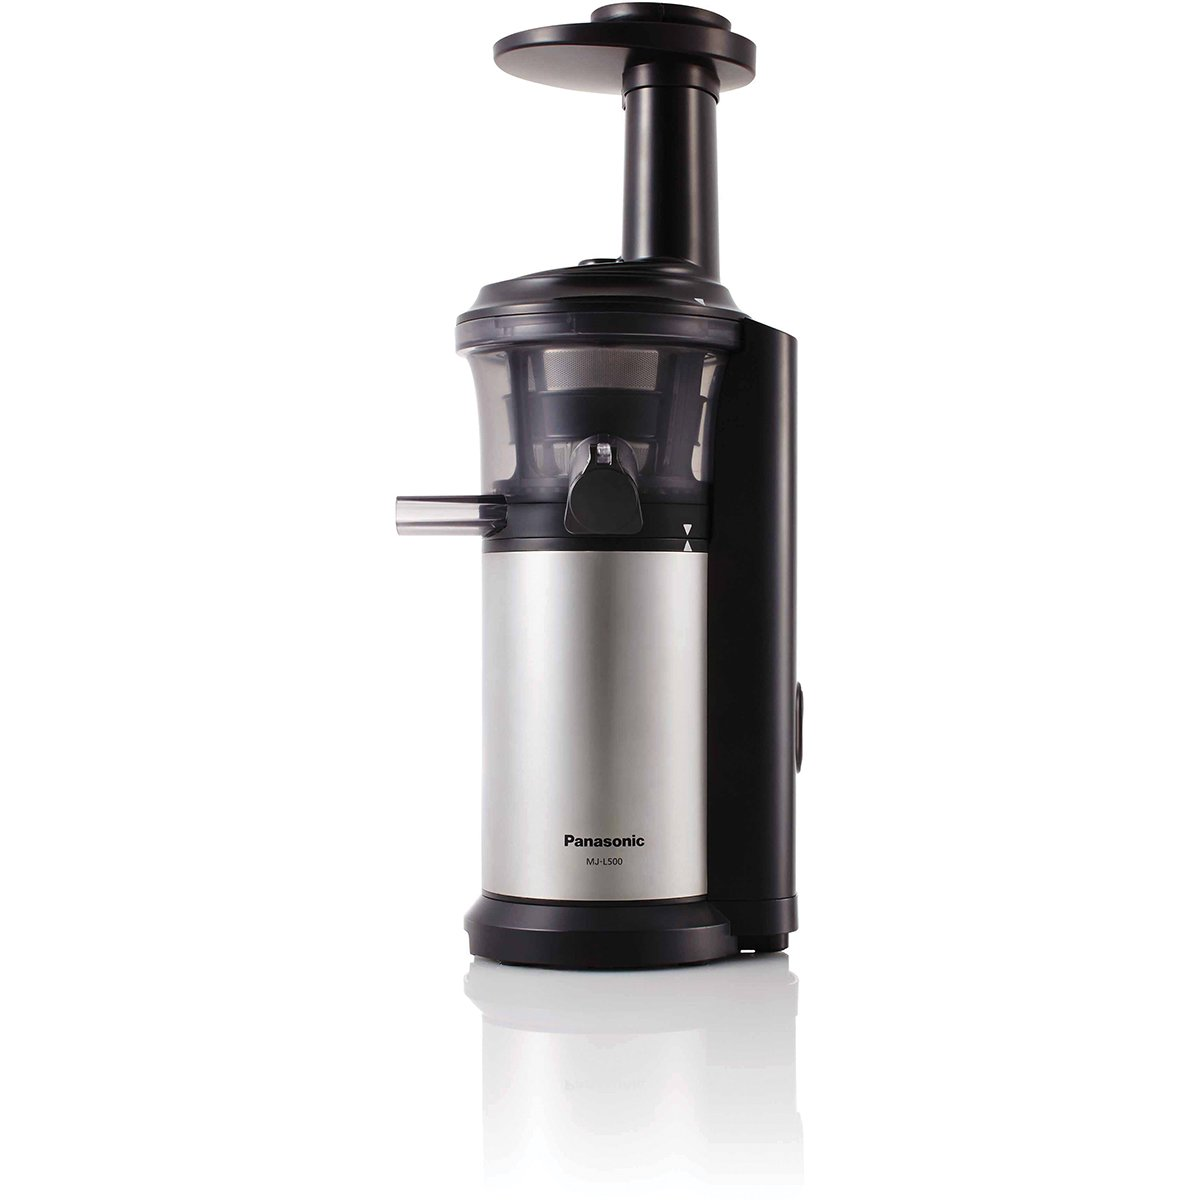 Panasonic Slow Juicer Mj L500sst : Panasonic MJ-L500SST Slow Juicer Appliances Online